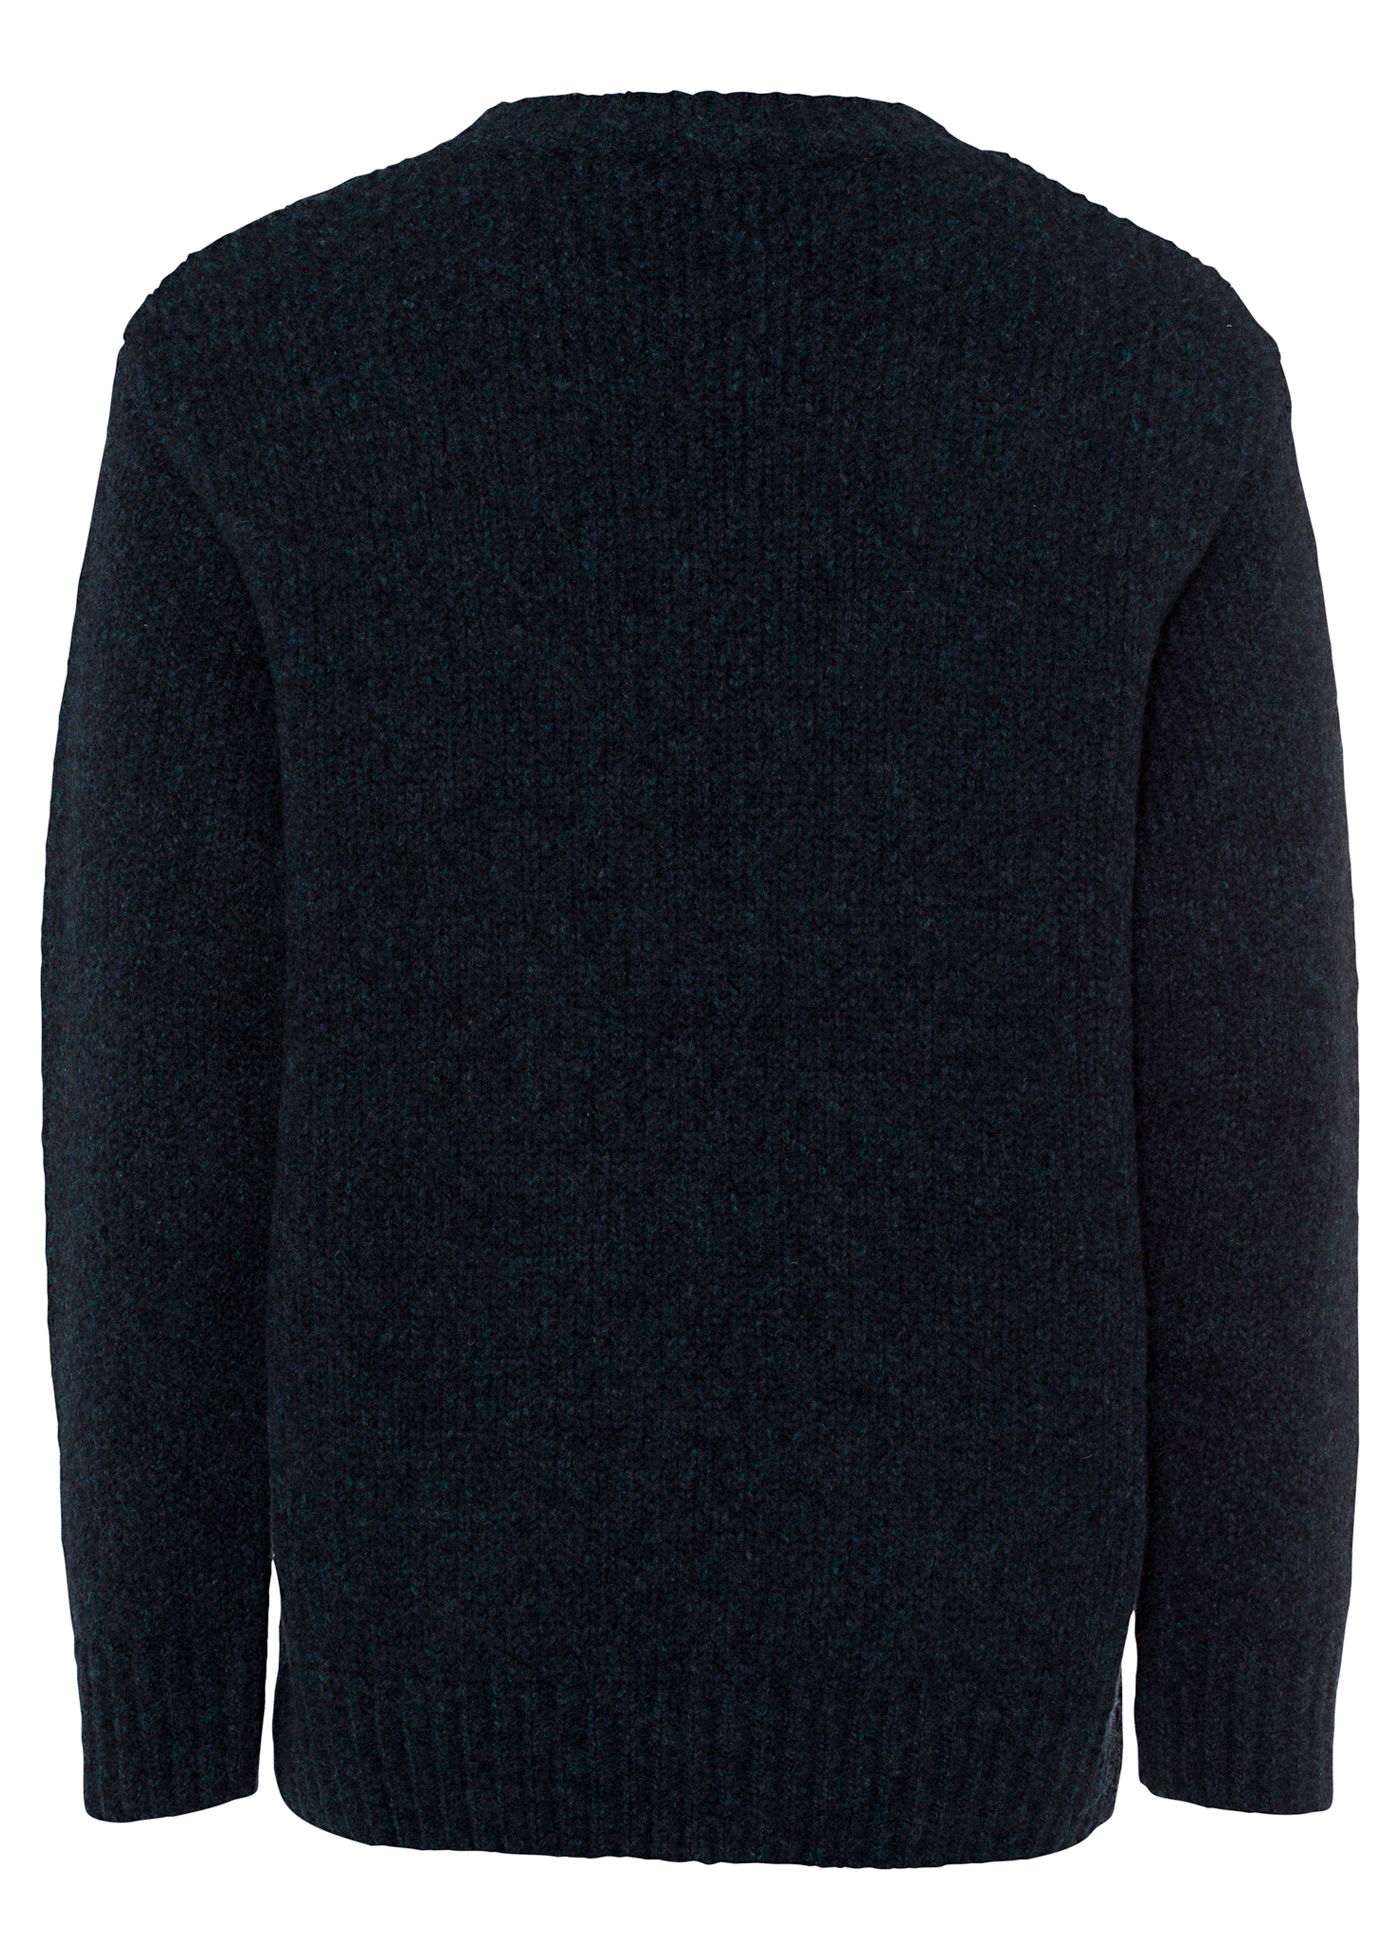 TIBBE 3705 M.K.SWEATER image number 1